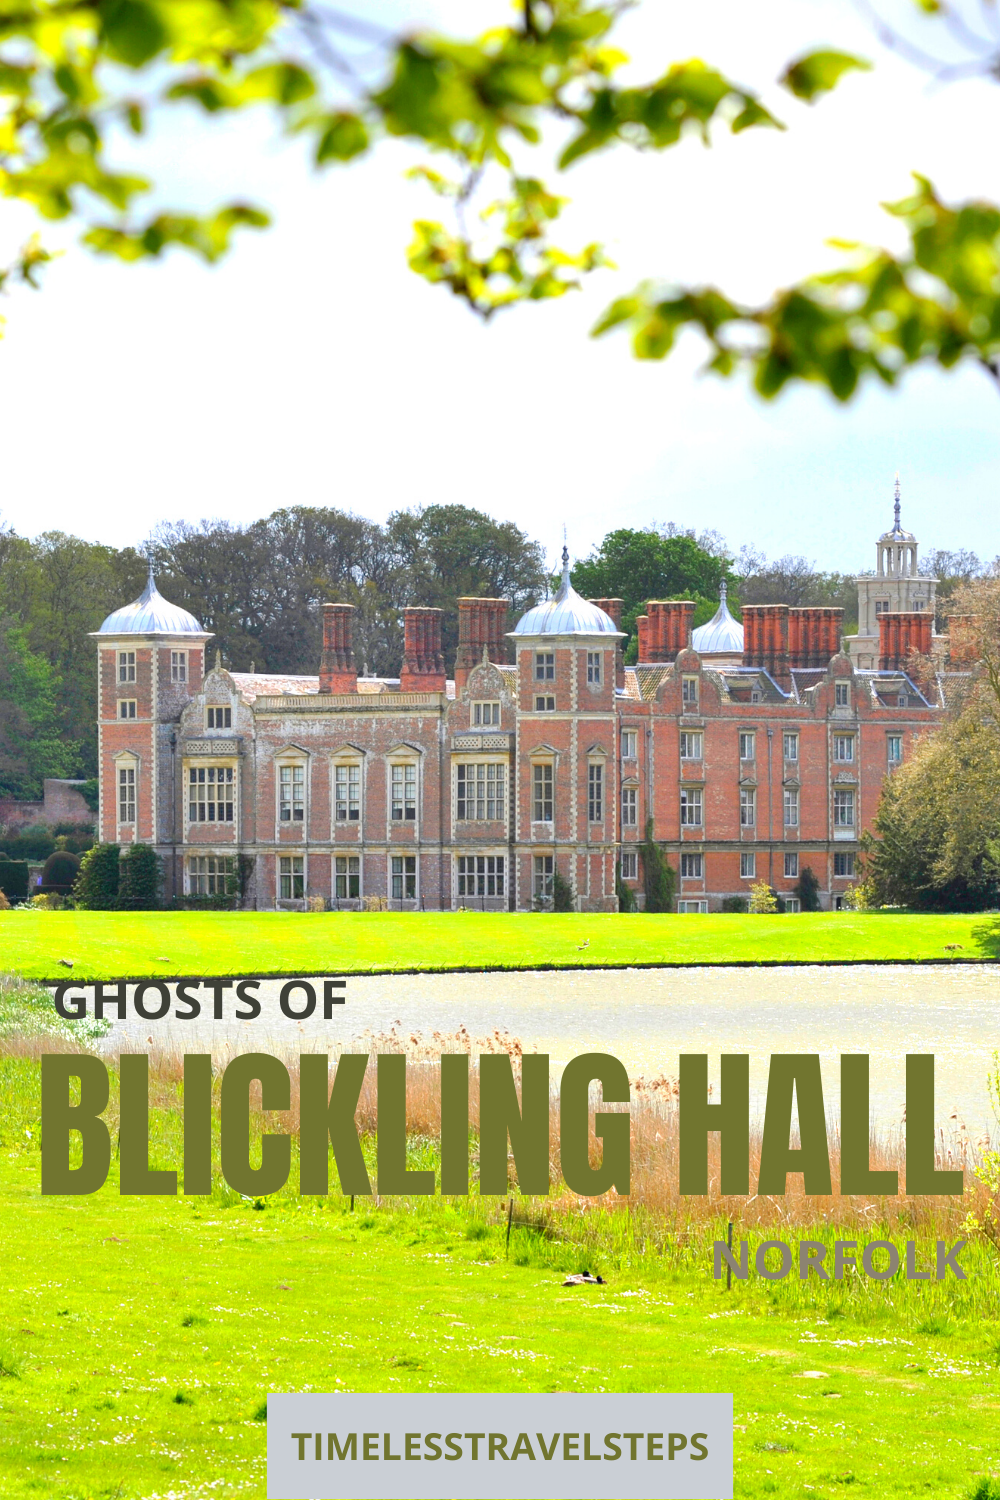 Blickling Hall, popular throughout the year and more so around May 19 each year as visitors try to get glimpses at the ghosts of Blickling Hall via @GGeorgina_timelesstravelsteps/